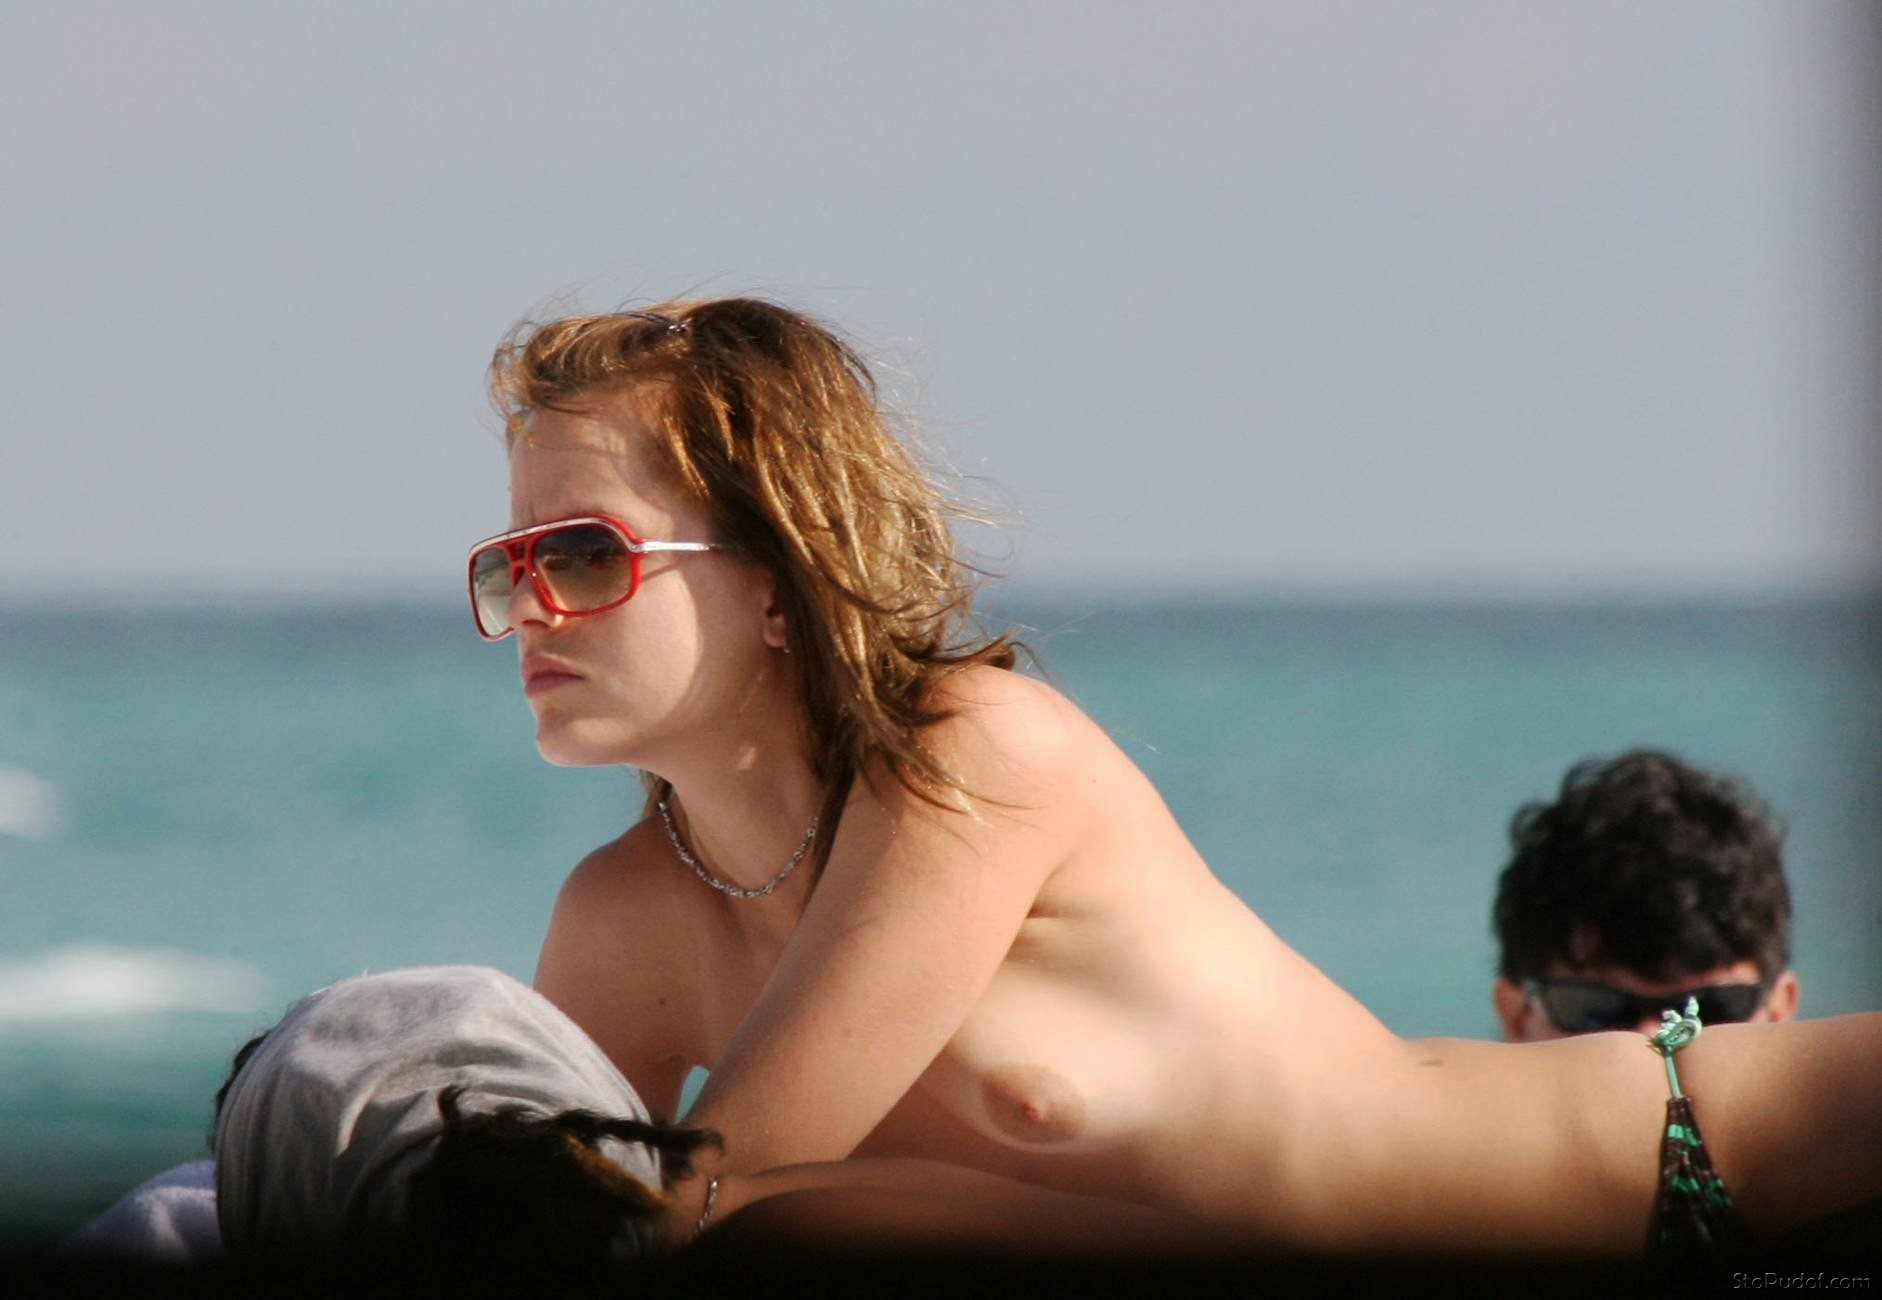 Mena Suvari naked celebrity photos - UkPhotoSafari